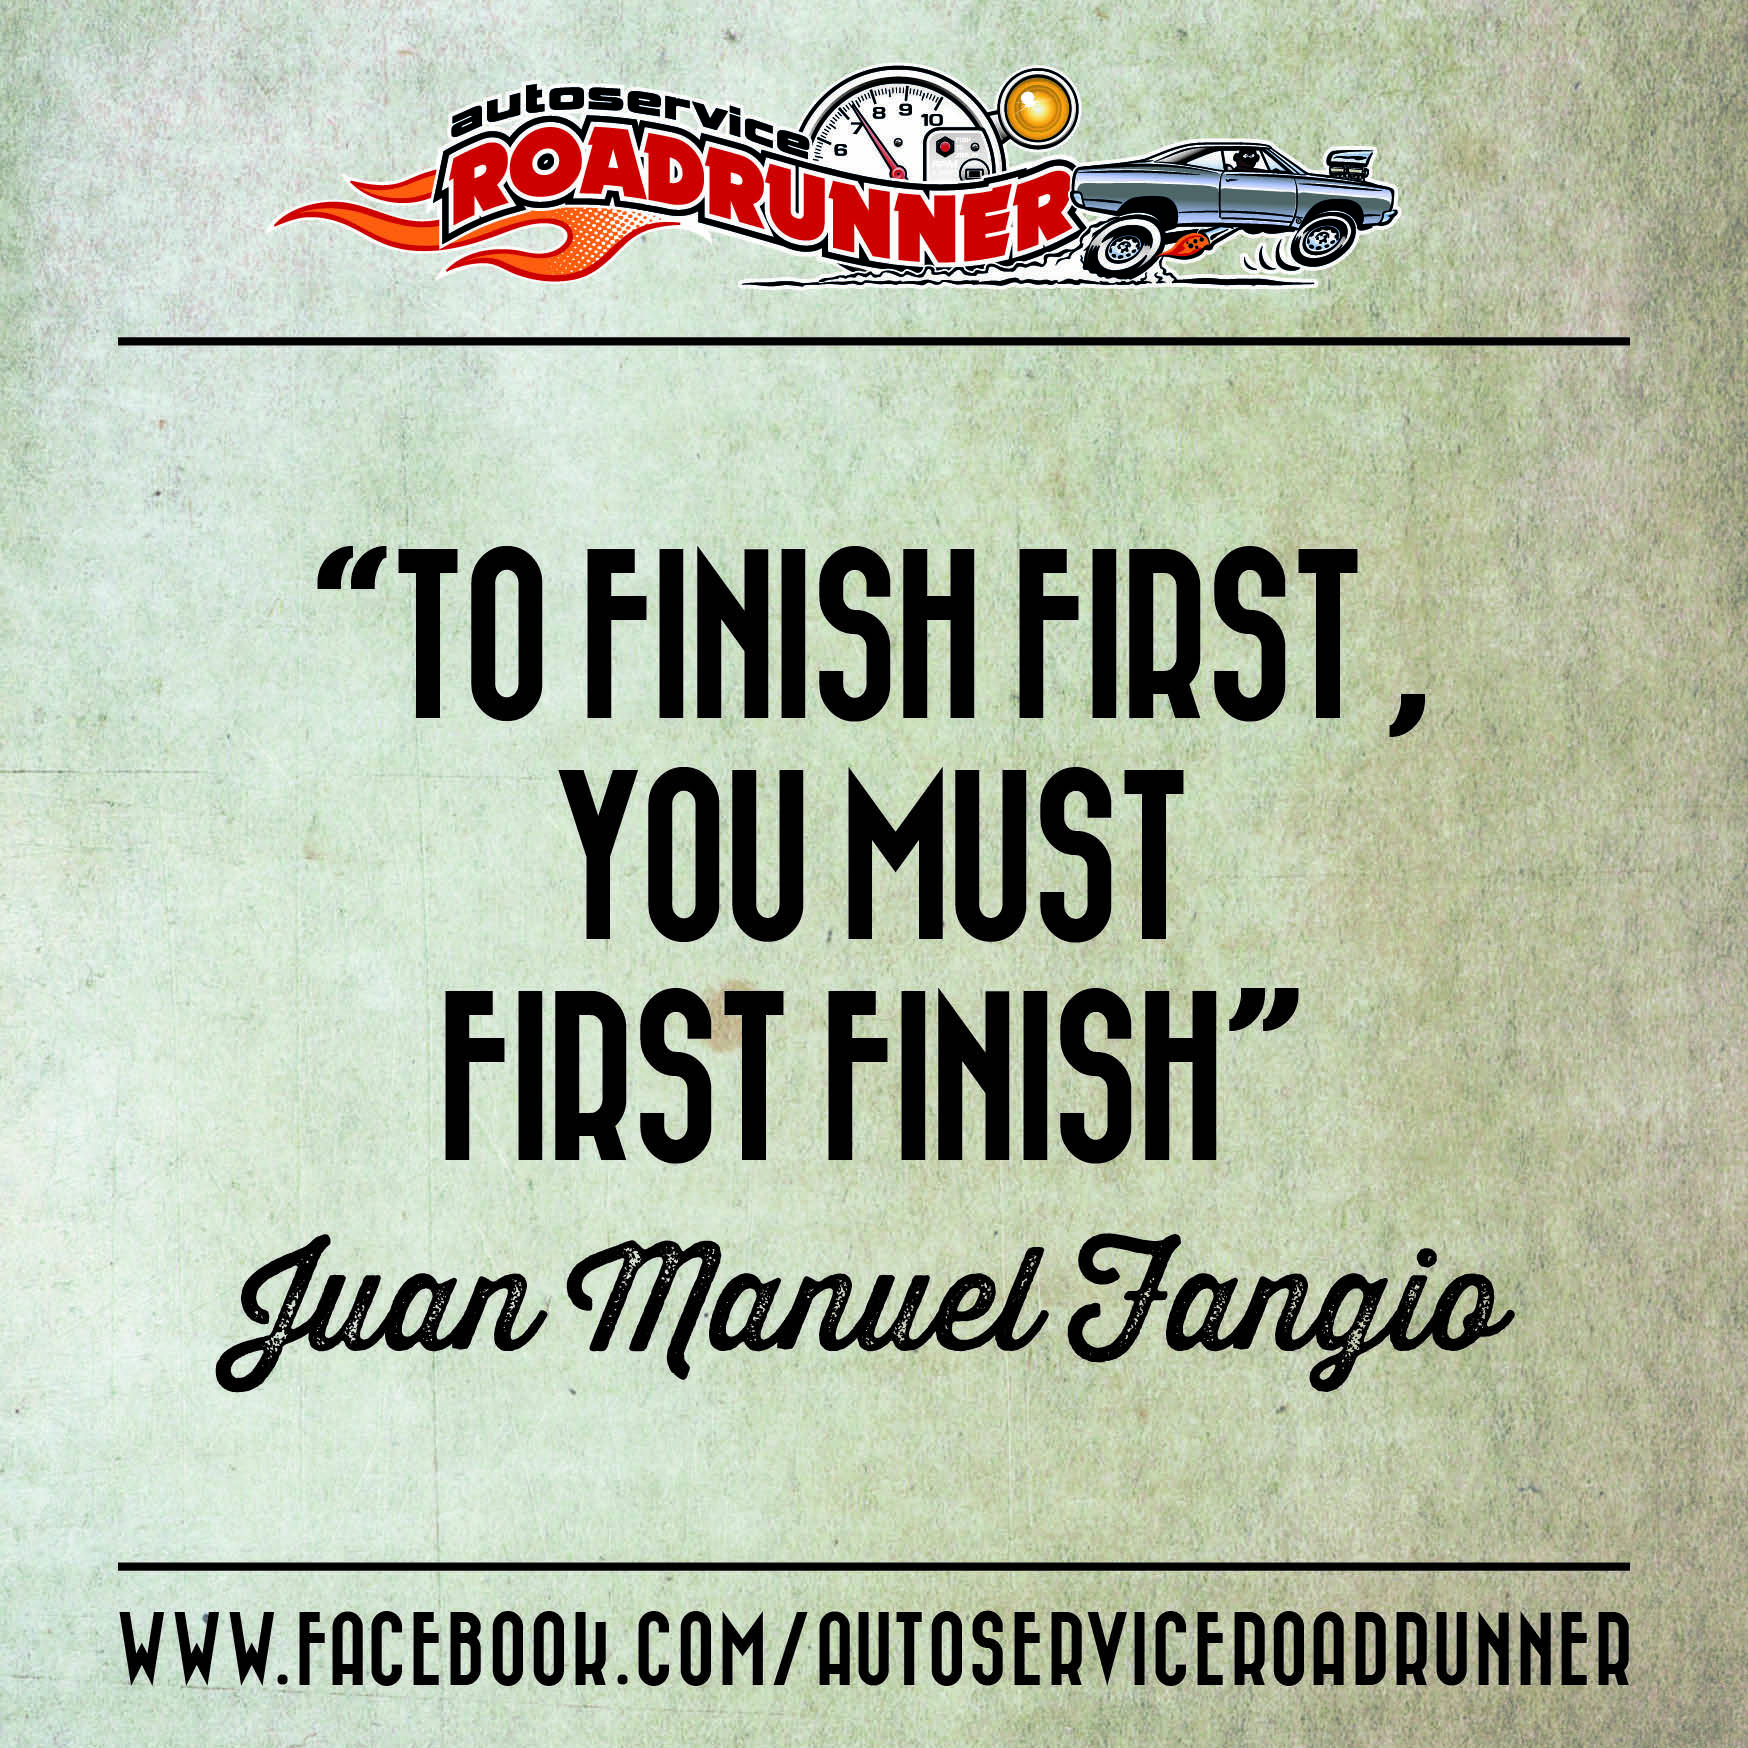 """""""To finish firsT, you must first finish"""" -  Juan Manuel Fangio / www.facebook.com/AutoserviceRoadrunner"""